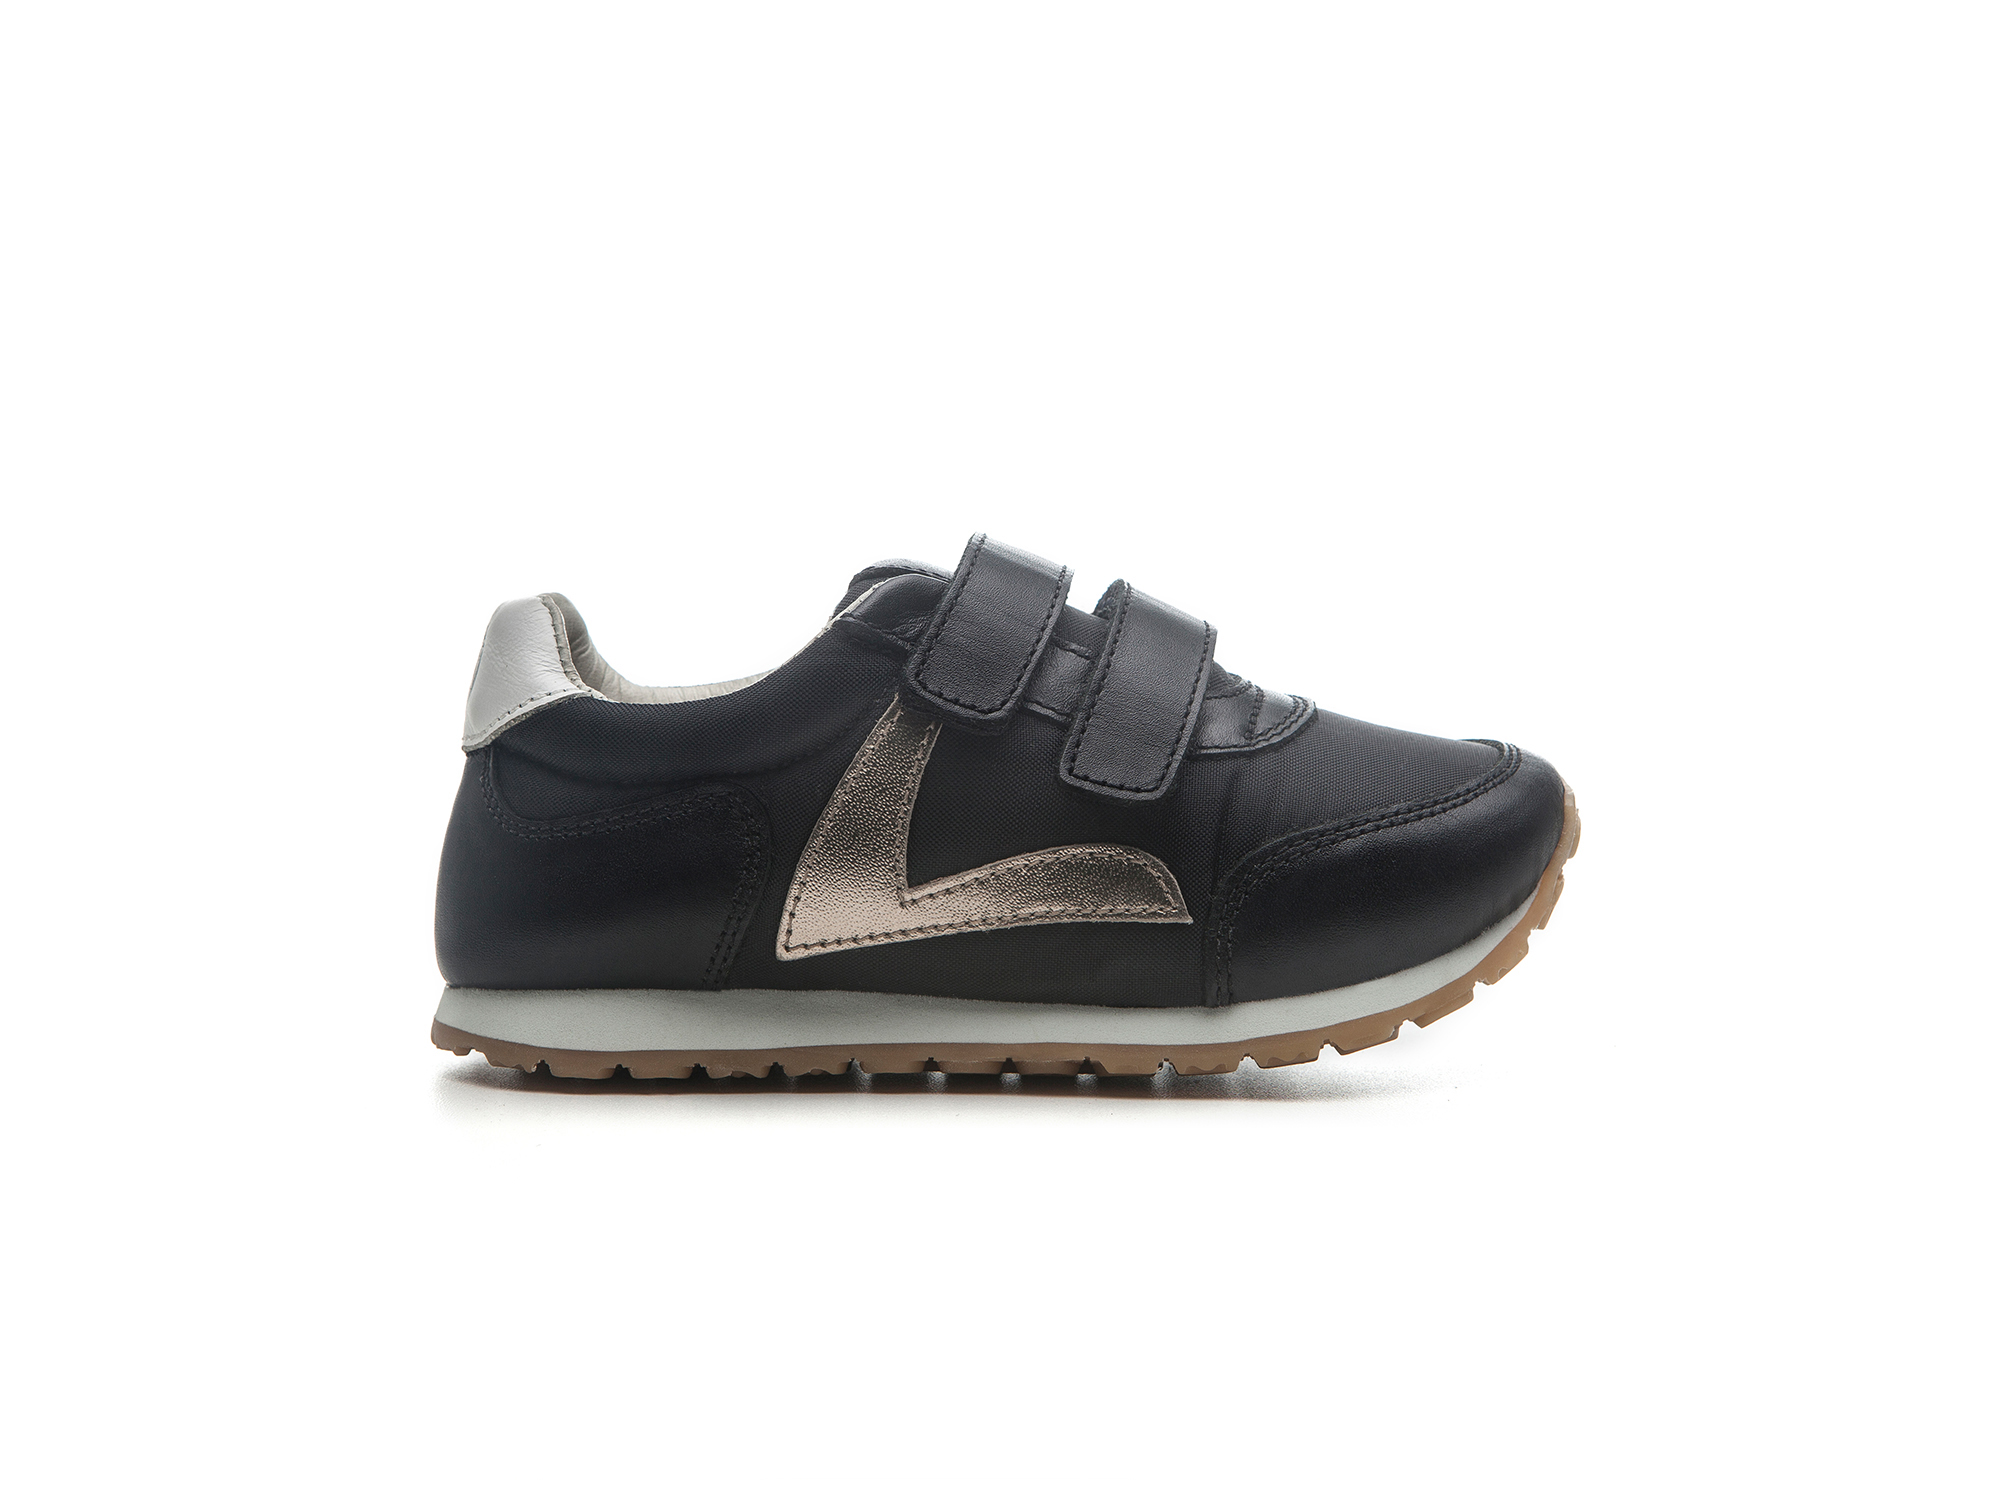 Tênis Little Jump Black Nylon/ Black Toscana  Toddler 2 à 4 anos - 0